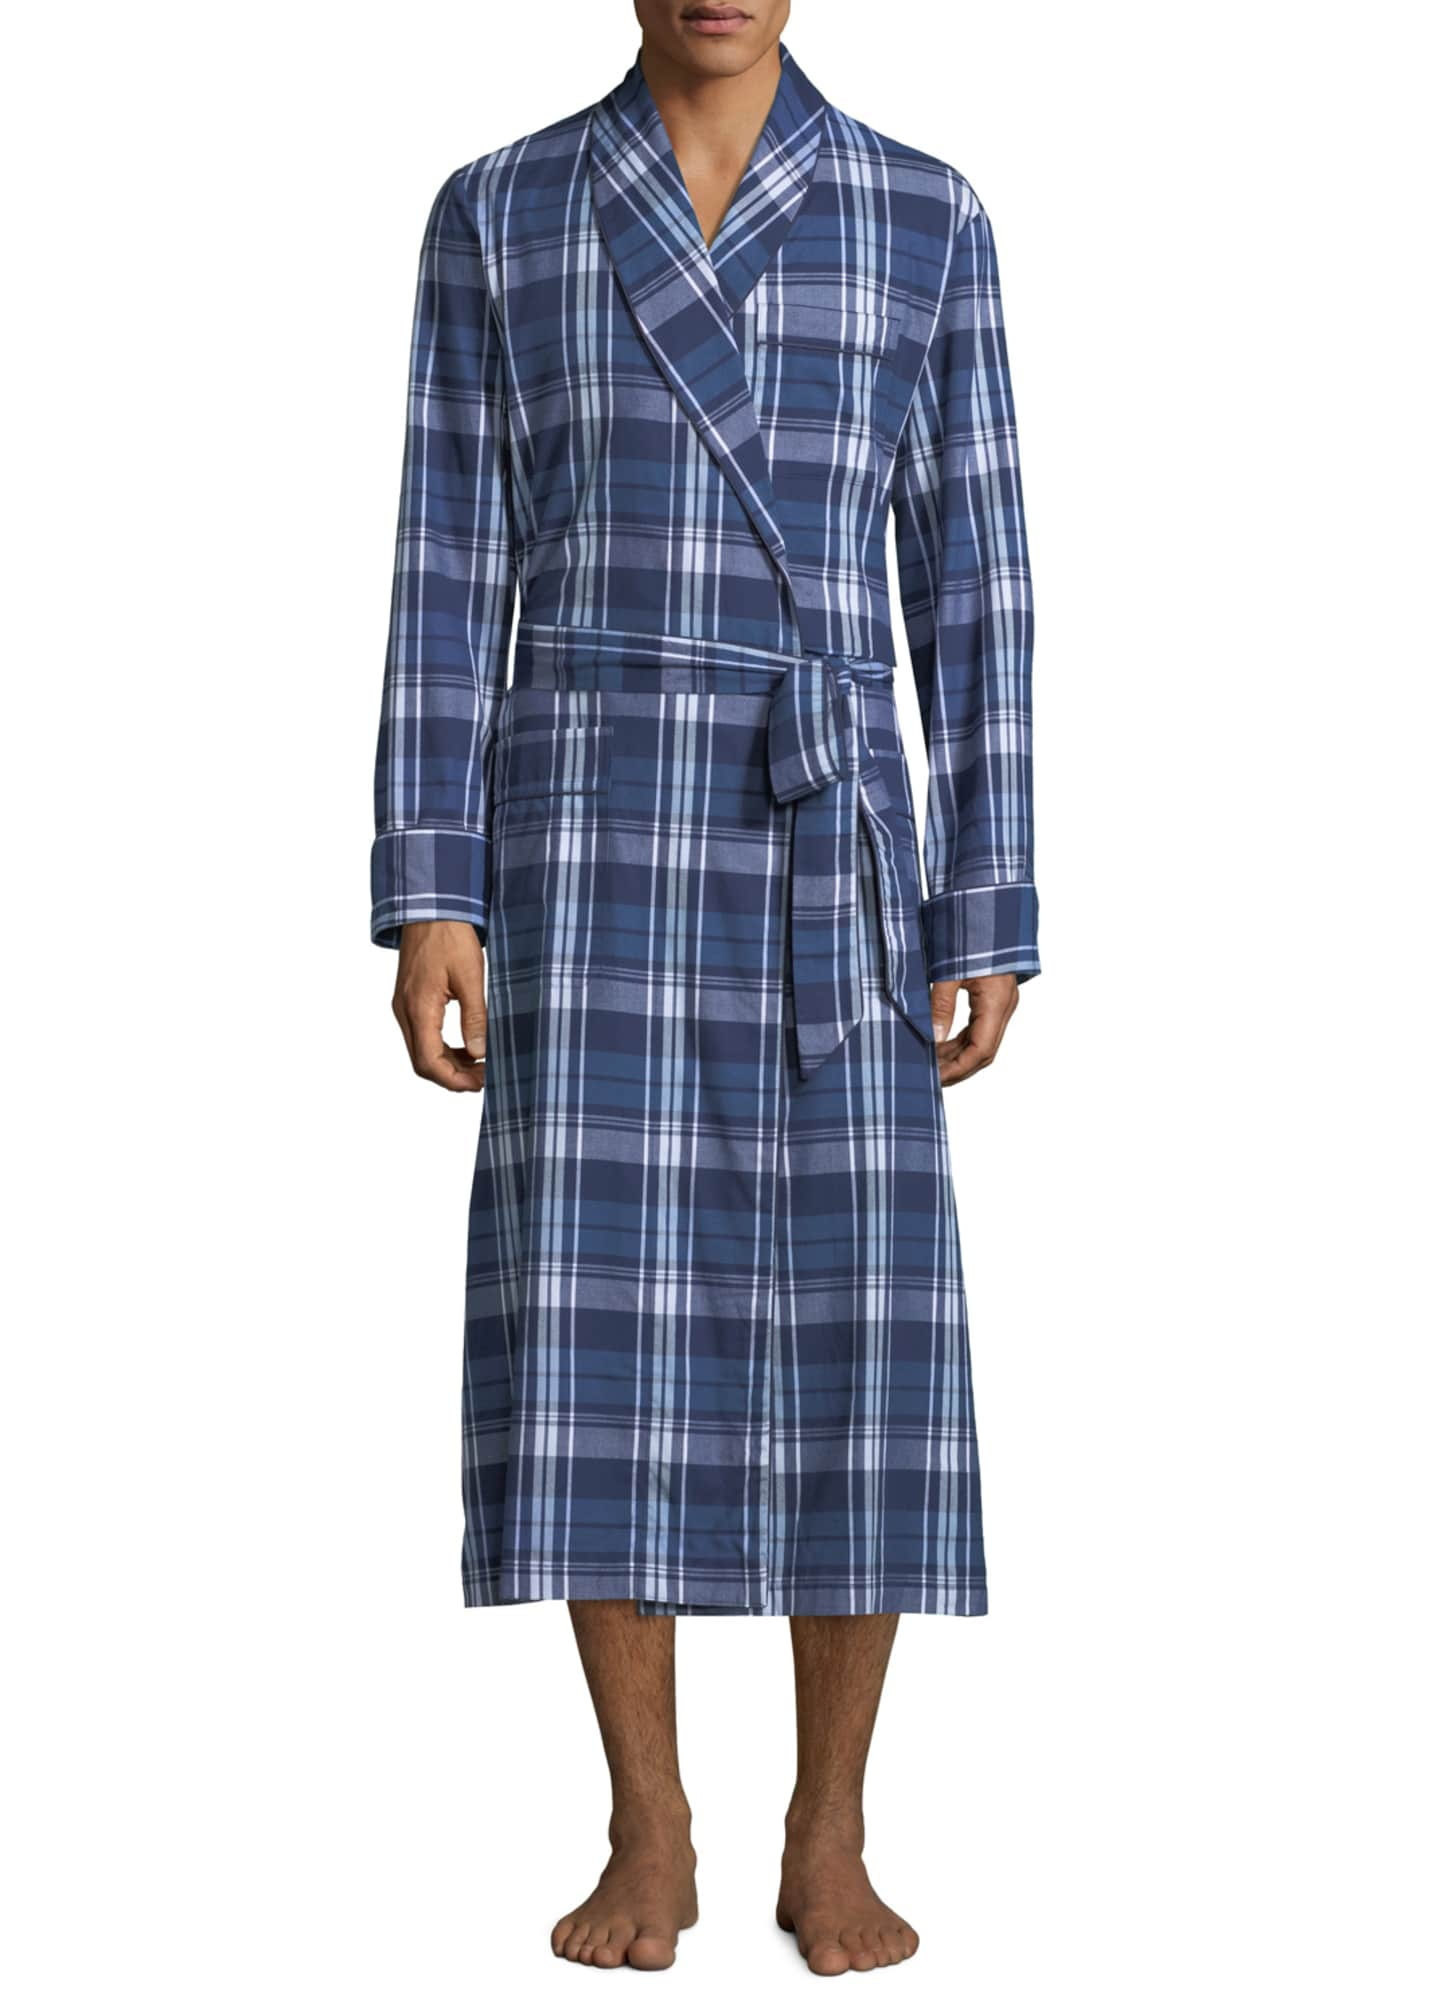 Derek Rose Men's Ranga 31 Long Plaid Cotton